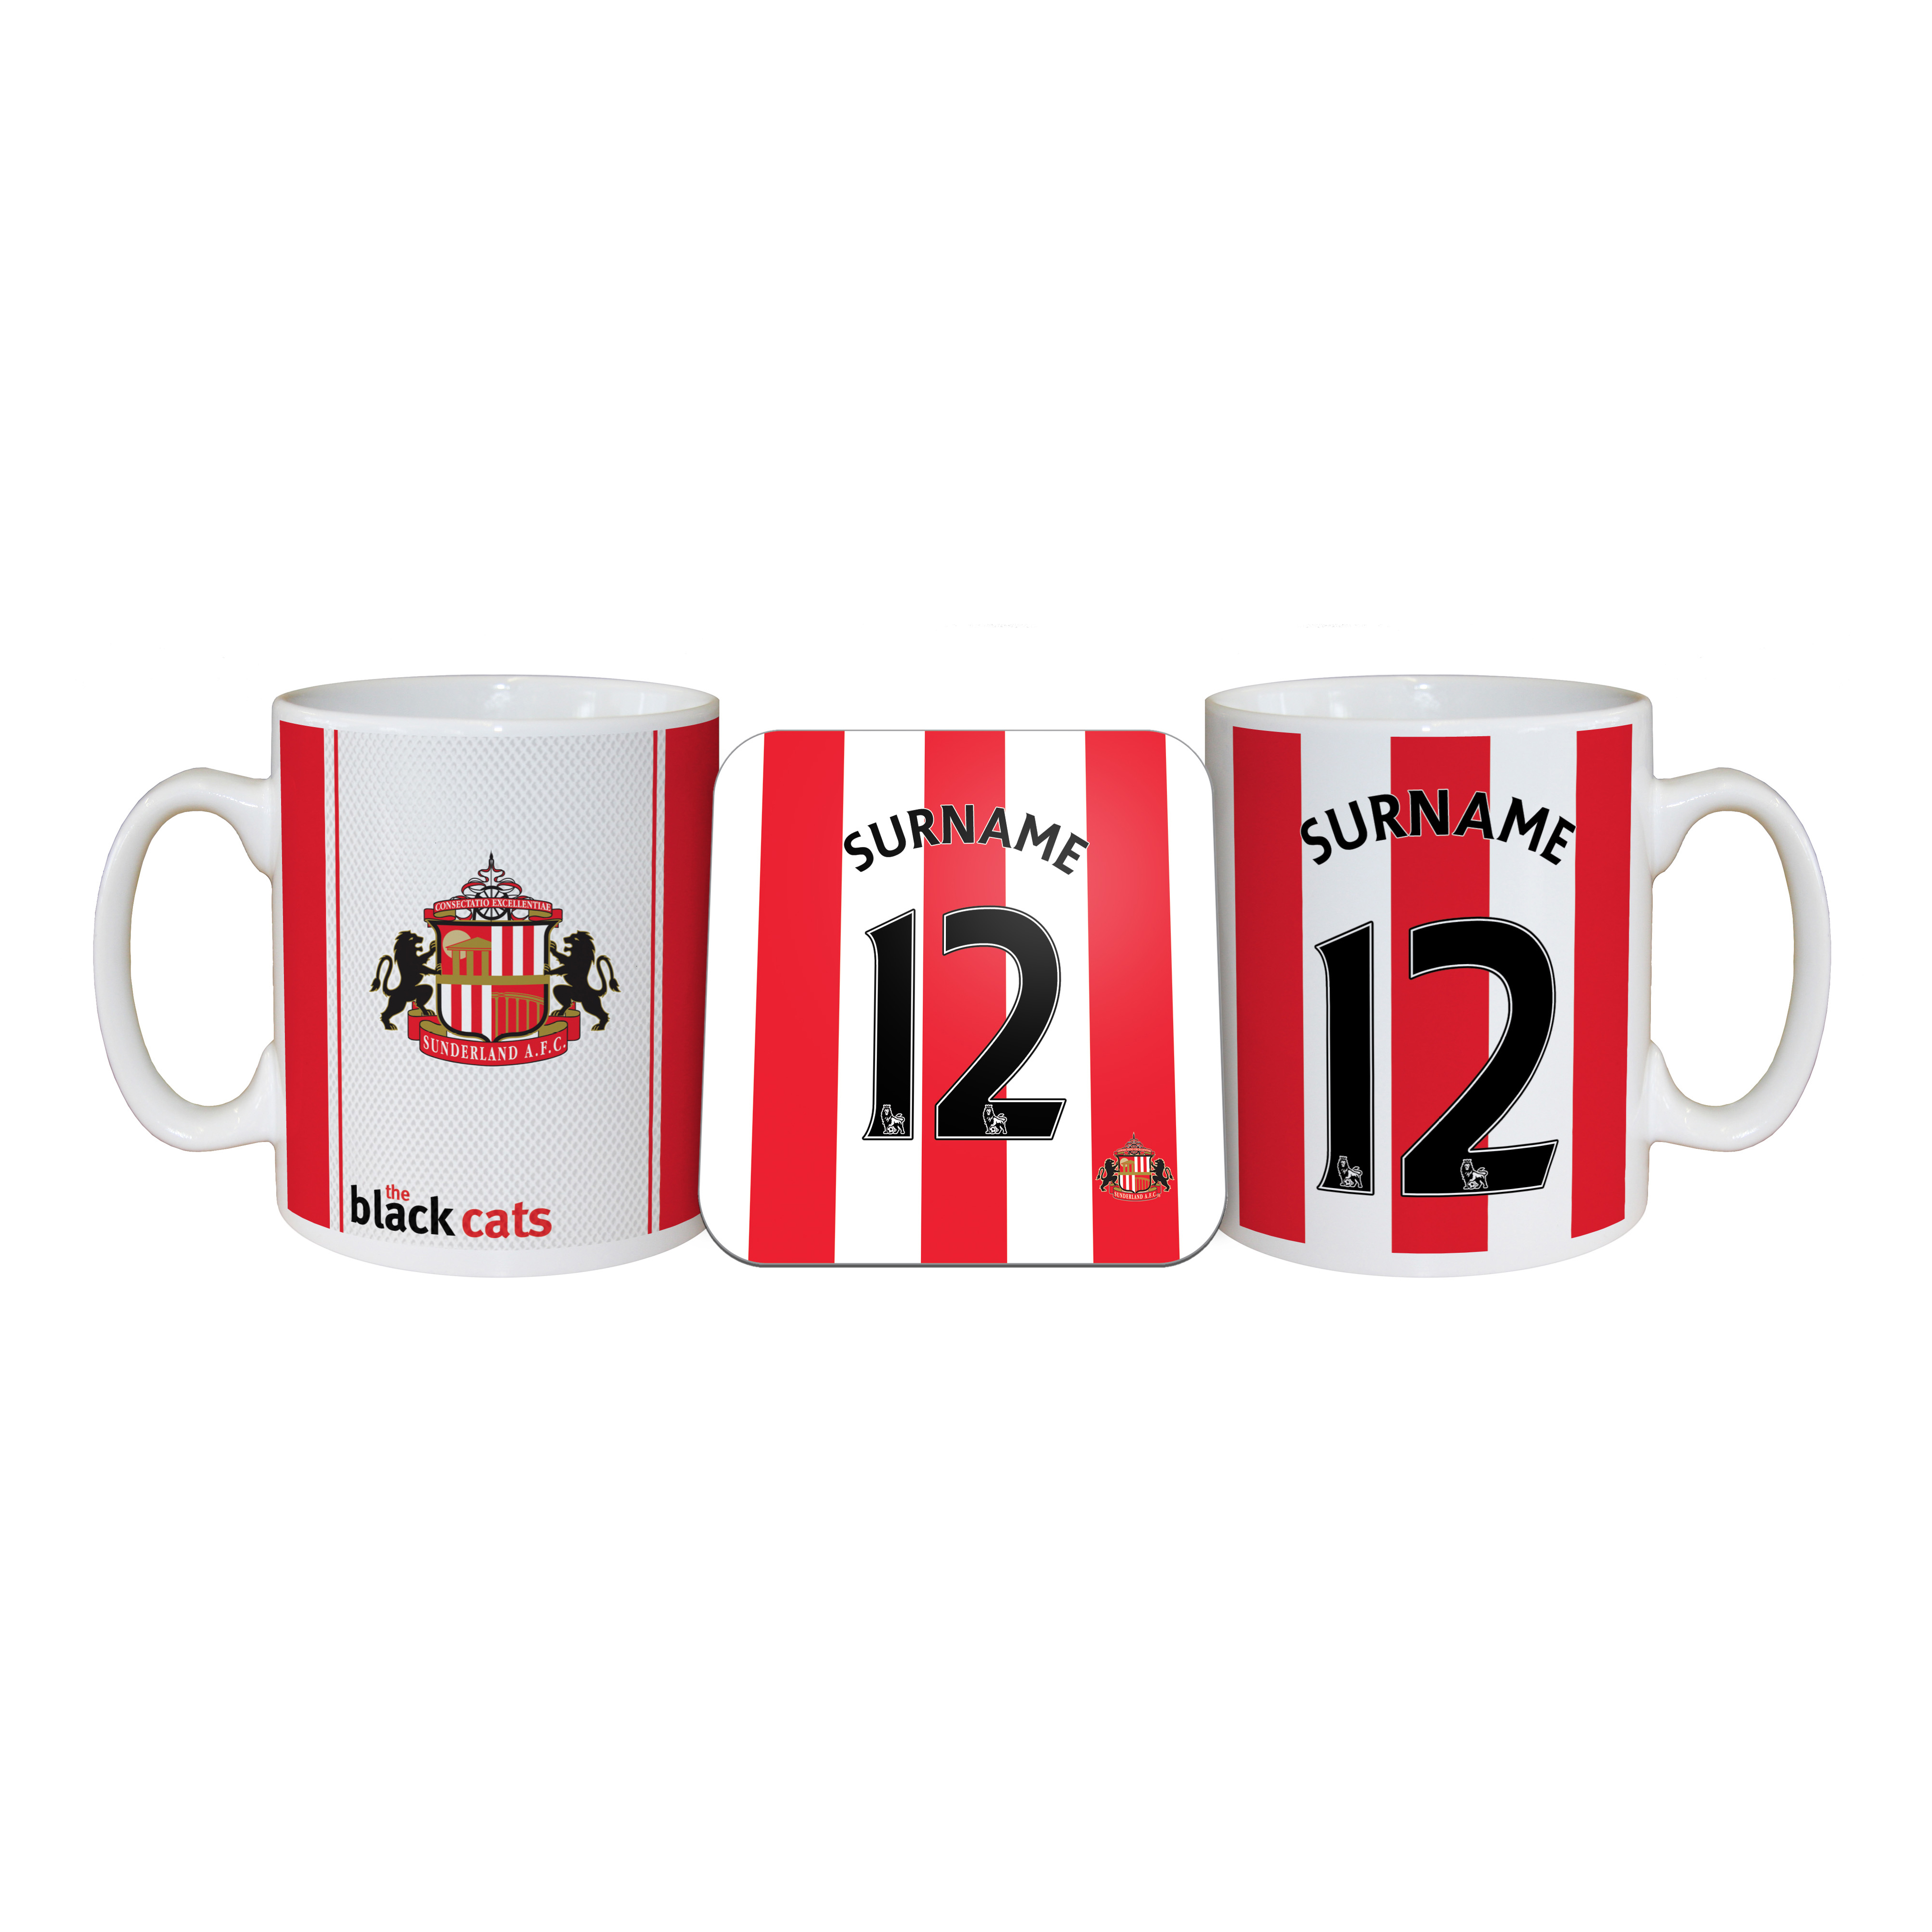 Sunderland Personalised Shirt Mug and Coaster Set